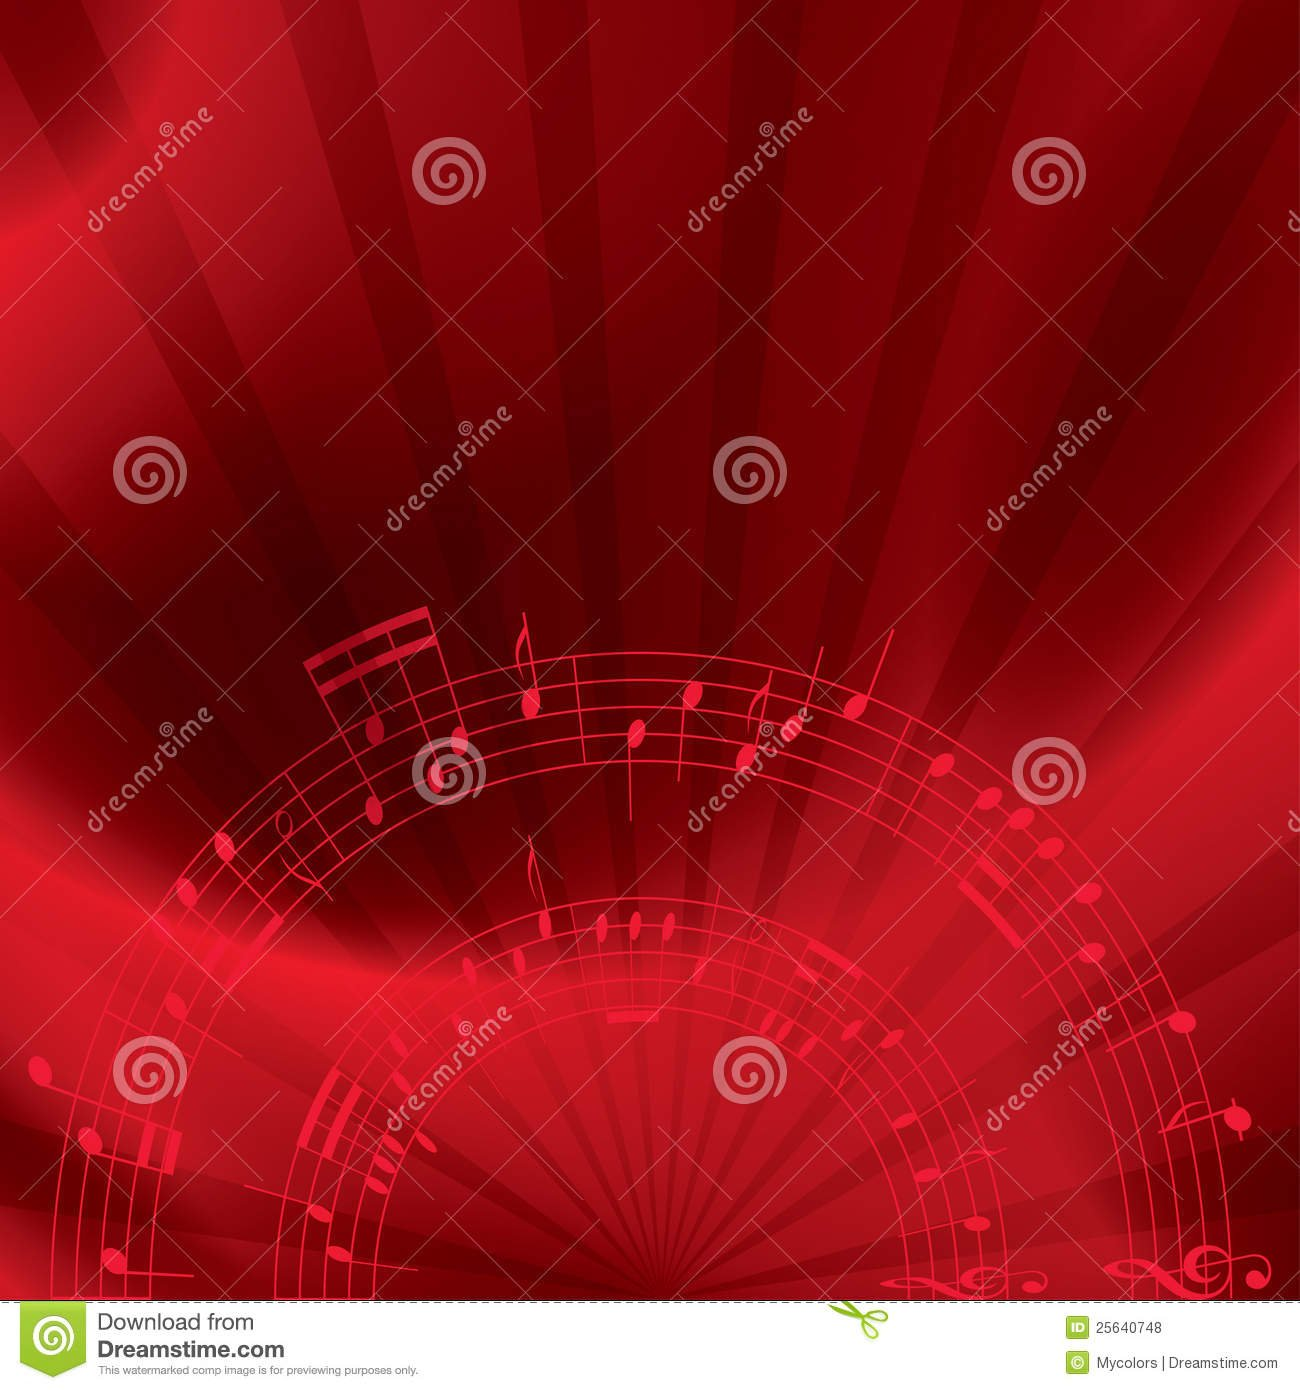 Top Wallpaper Music Red - 2dG9xD  Graphic_25379.jpg